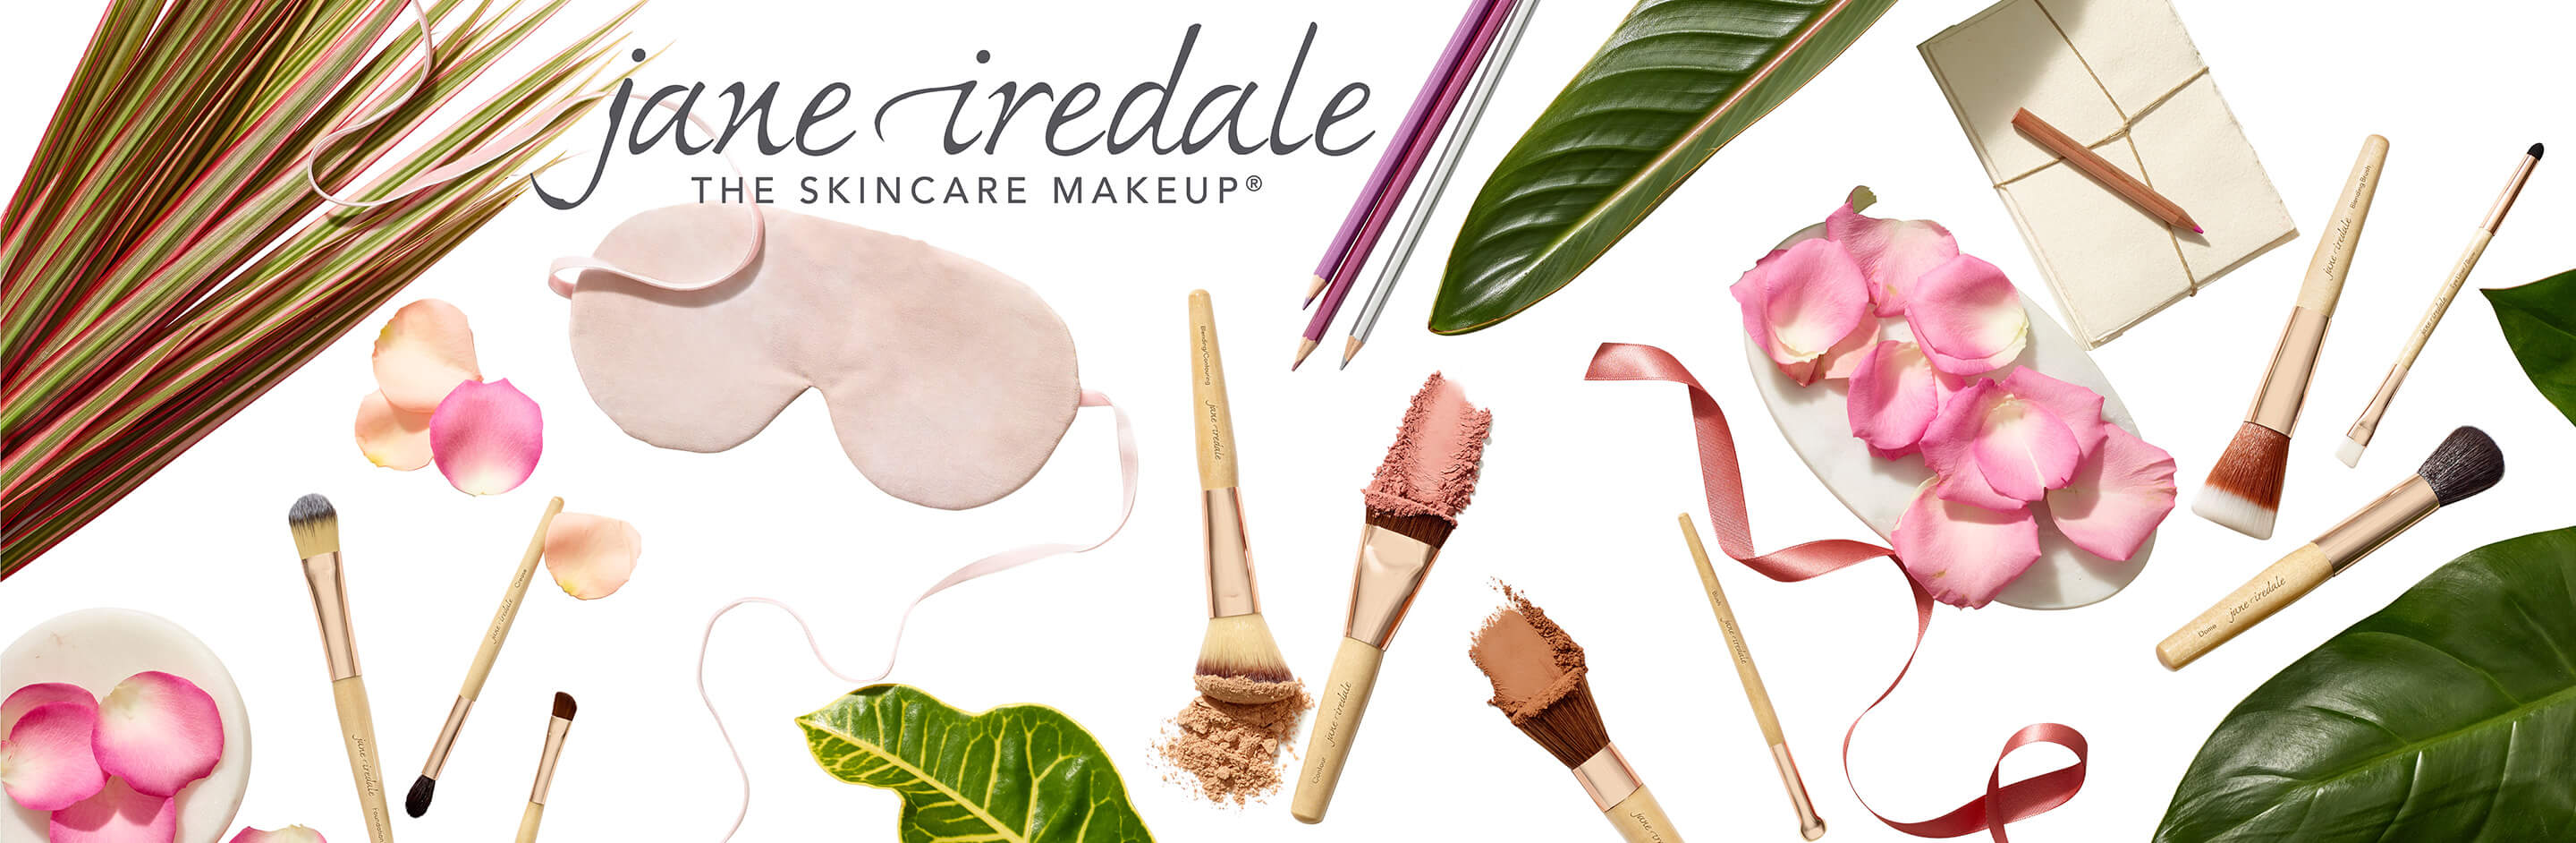 jane iredale Product Range